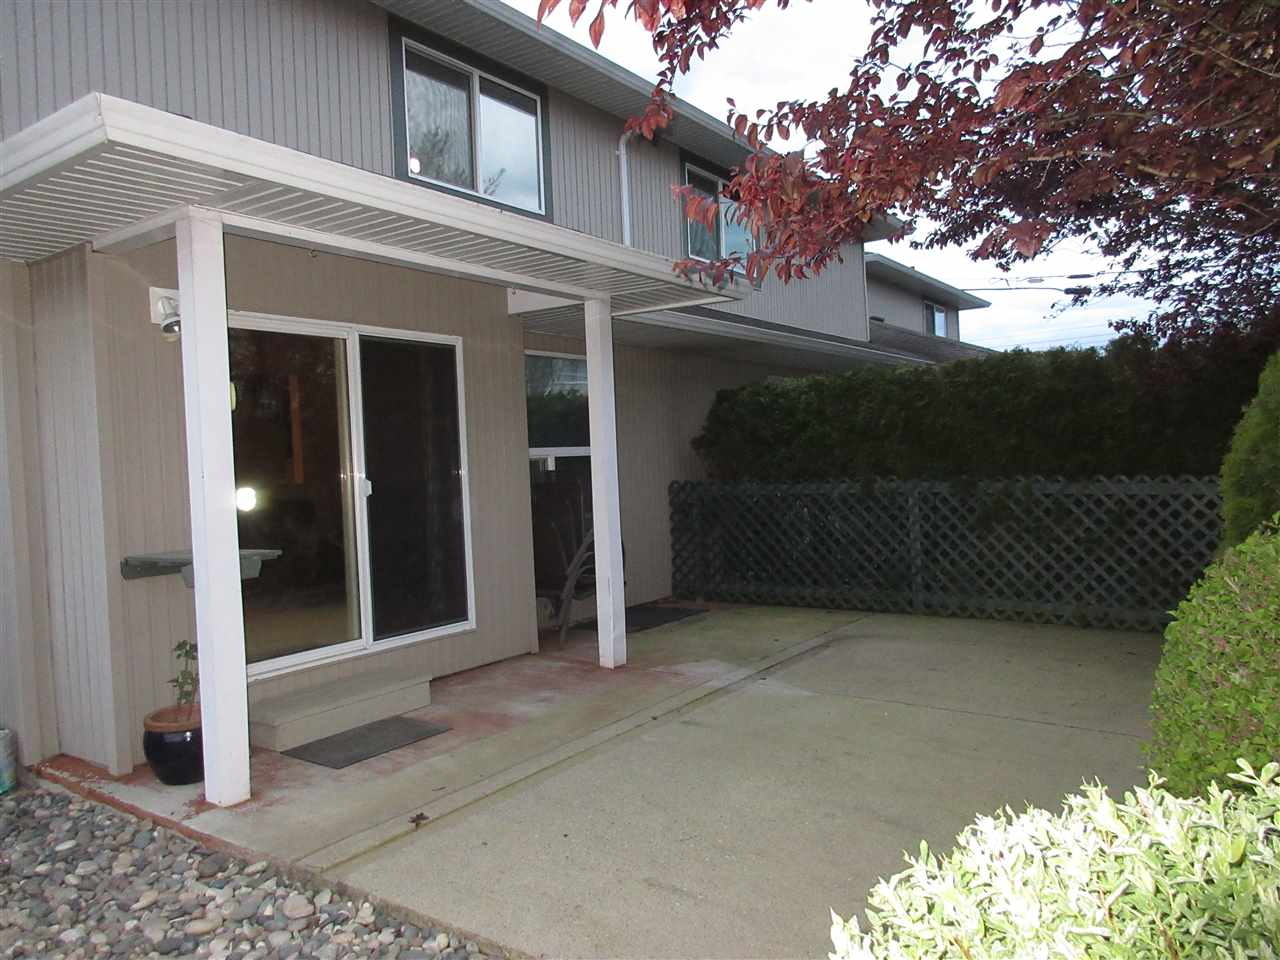 Photo 15: 3 9408 HAZEL Street in Chilliwack: Chilliwack E Young-Yale Townhouse for sale : MLS® # R2055068